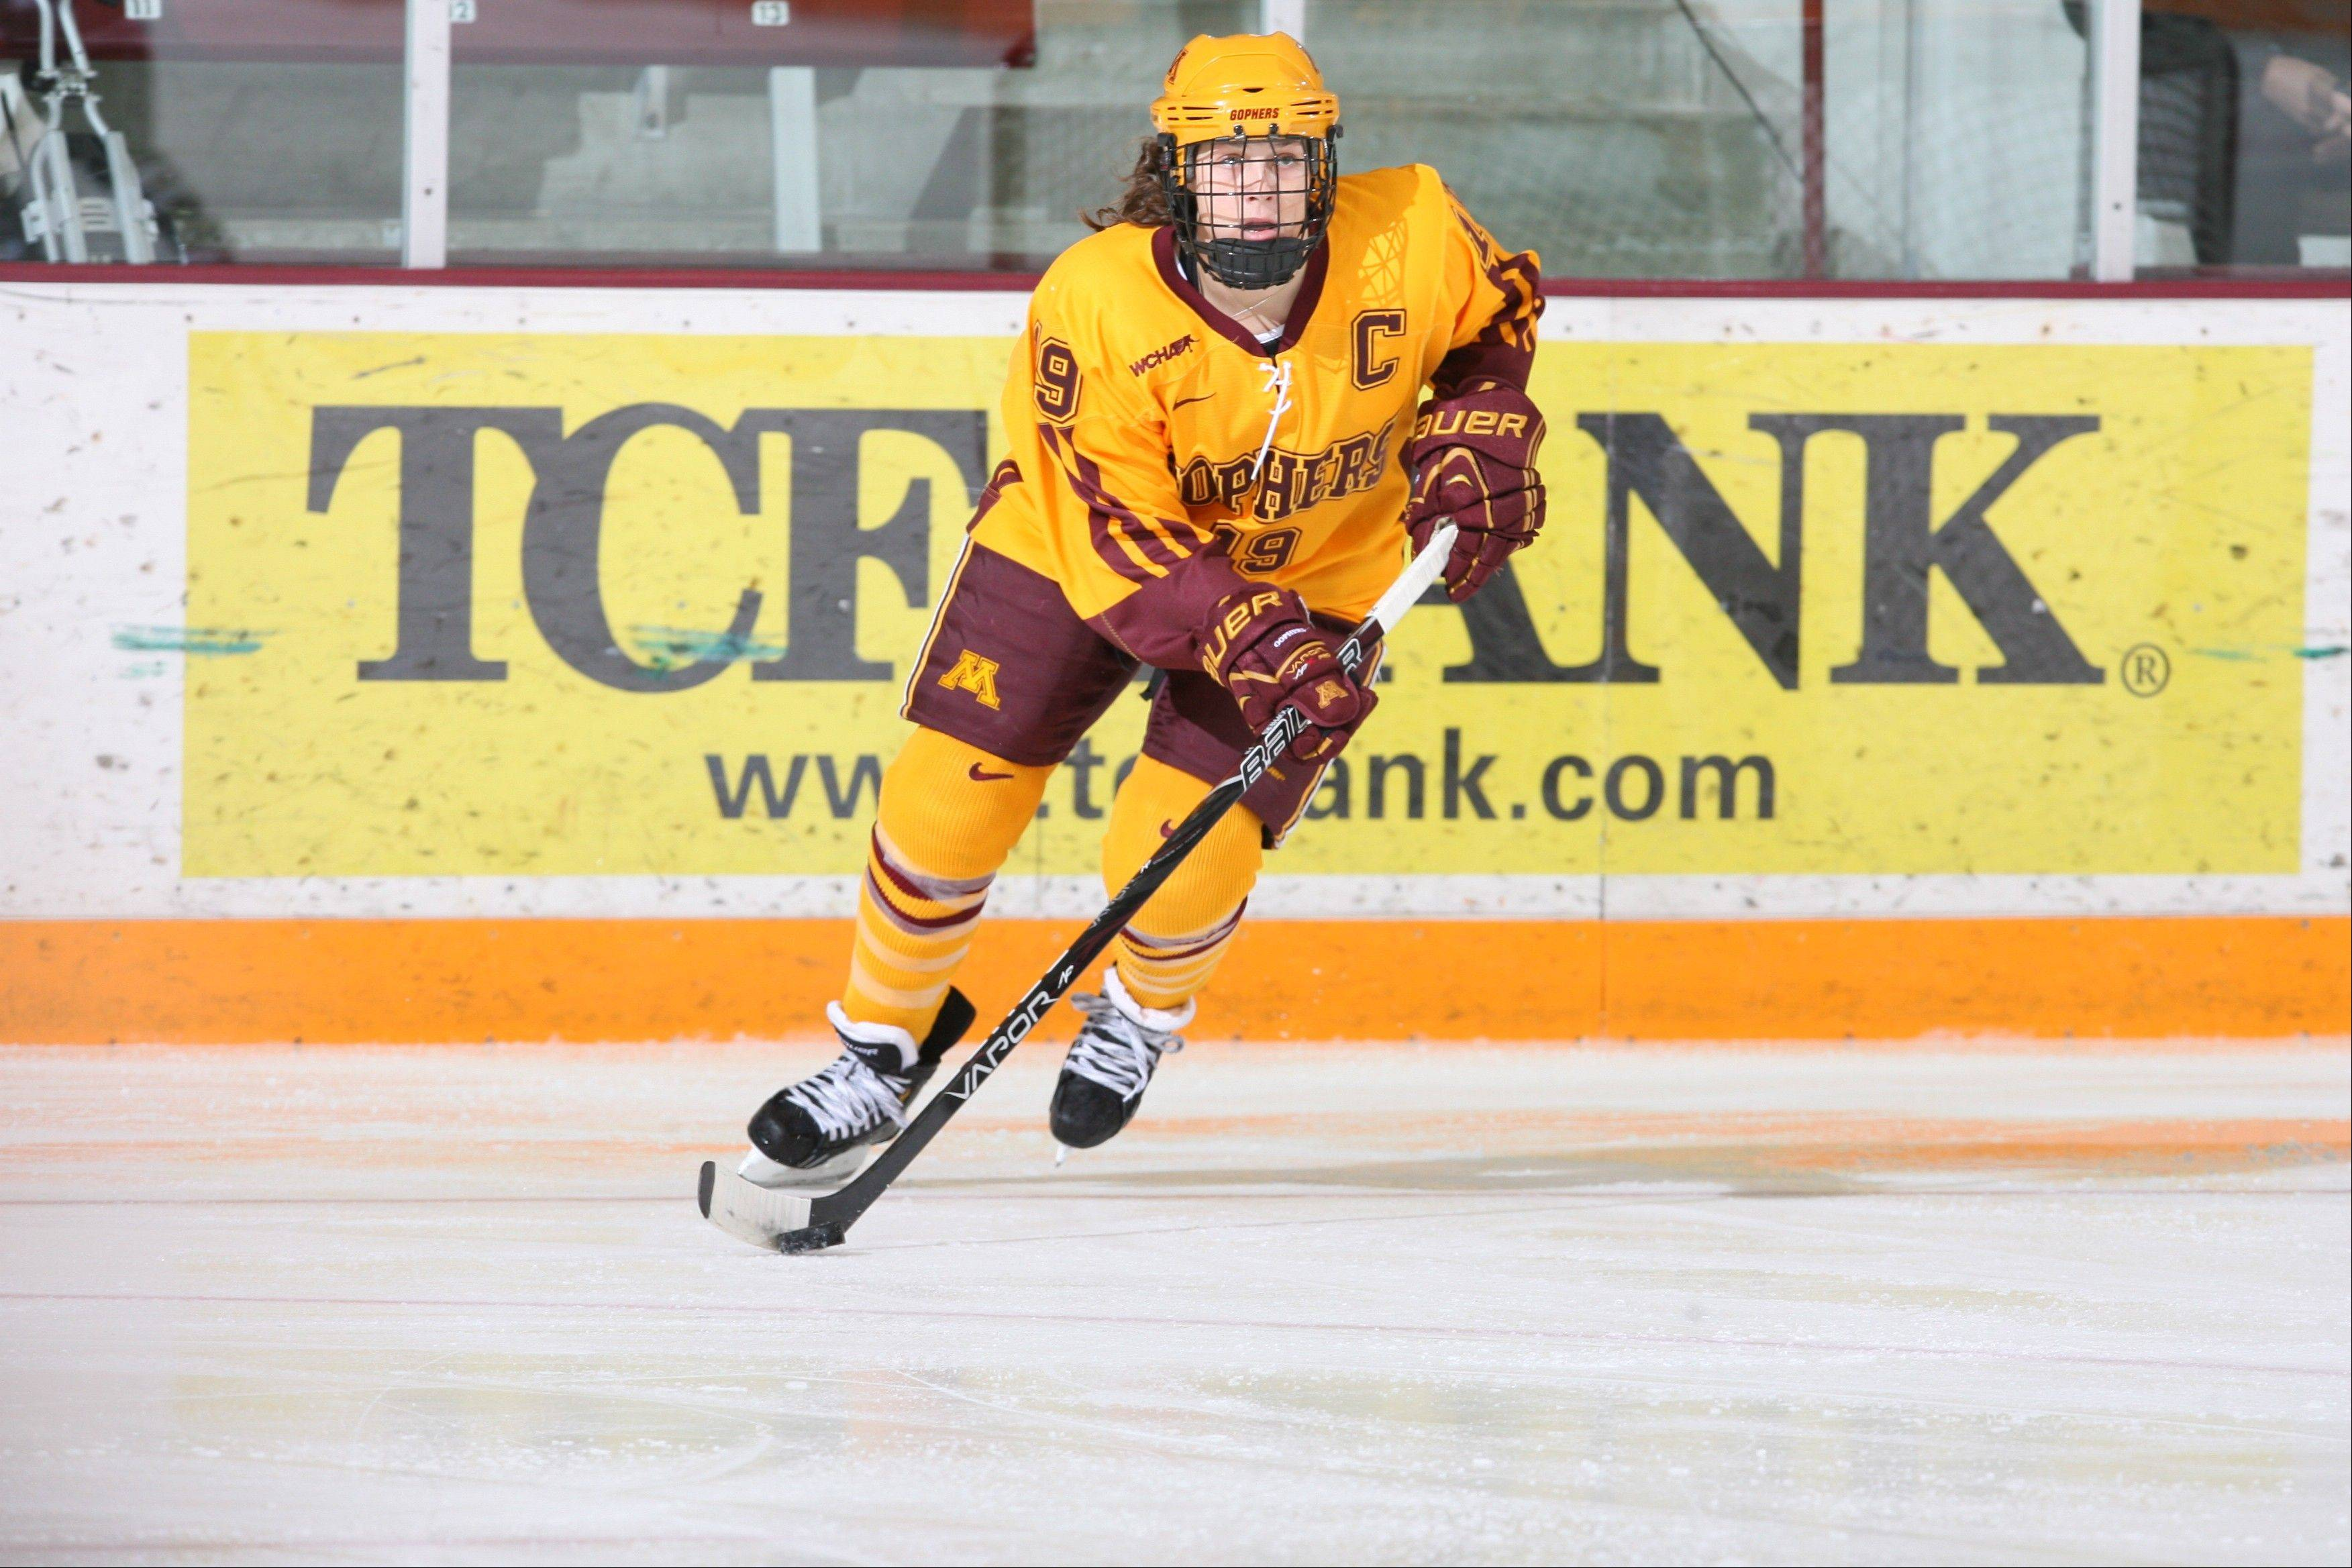 All-American defenseman Megan Bozek, a Buffalo Grove native and Stevenson grad, is co-captain of the undefeated University of Minnesota women's ice hockey team.